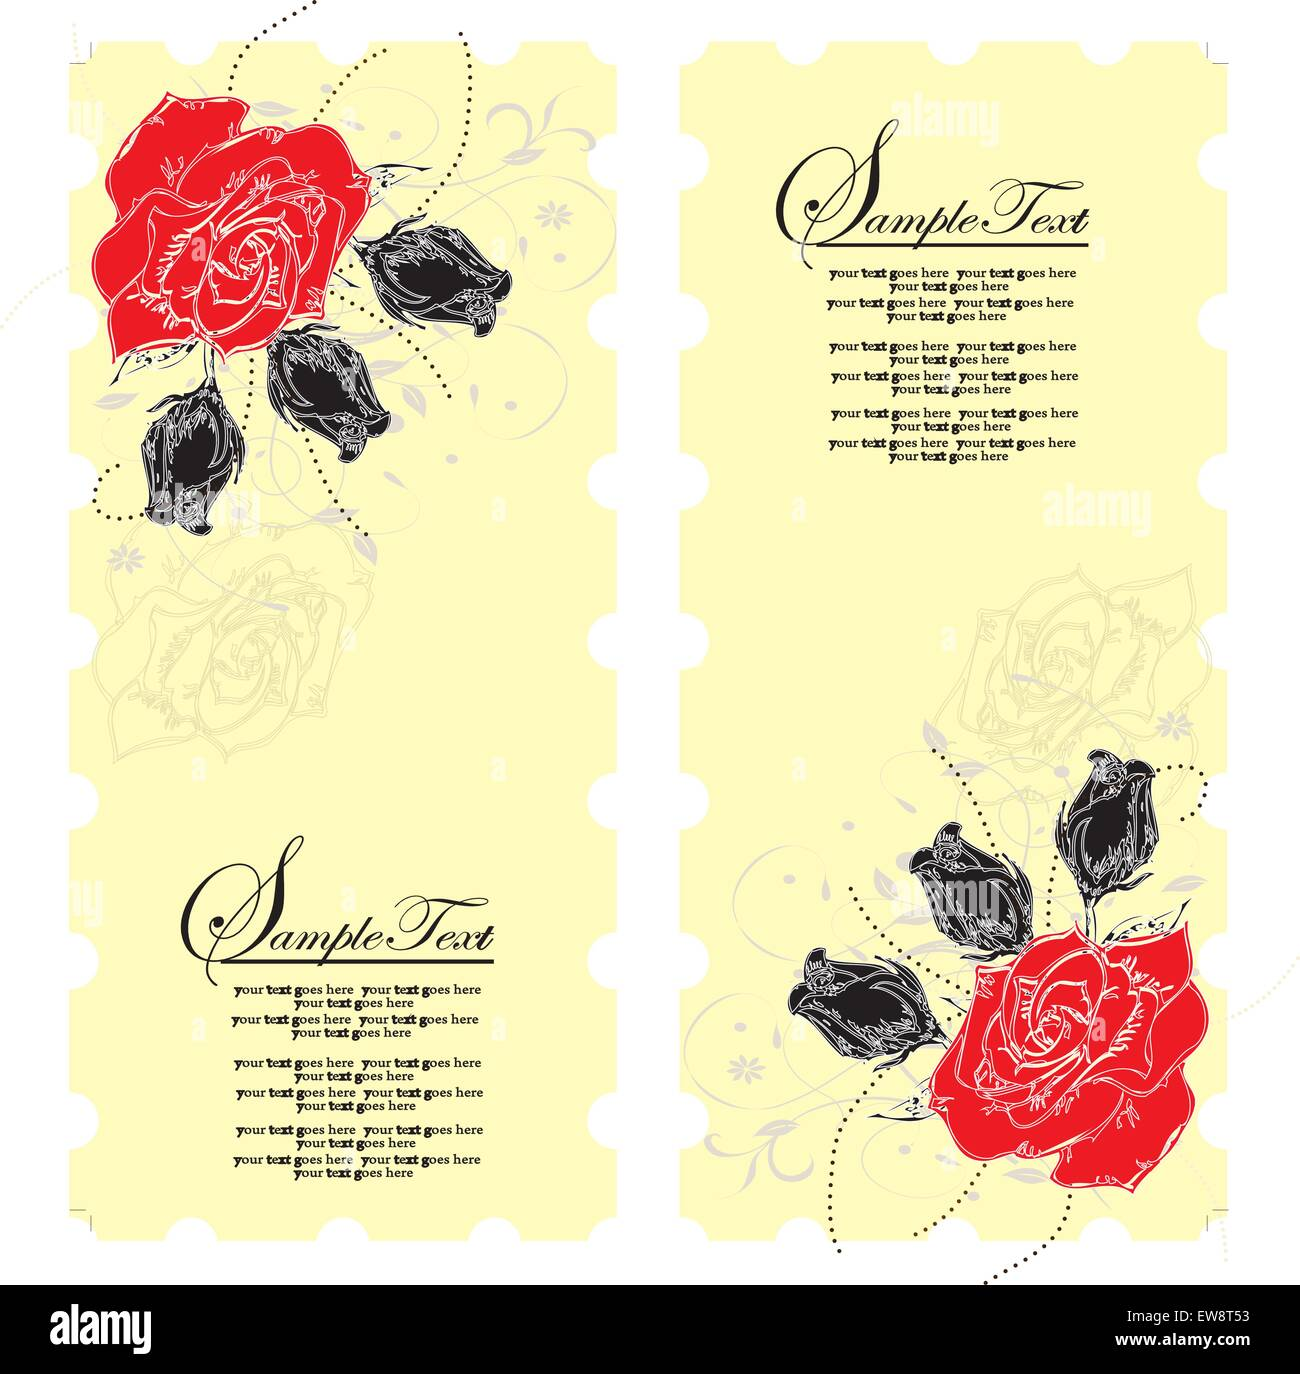 Vintage invitation card with elegant floral design, red flowers on yellow. Vector illustration. Stock Vector